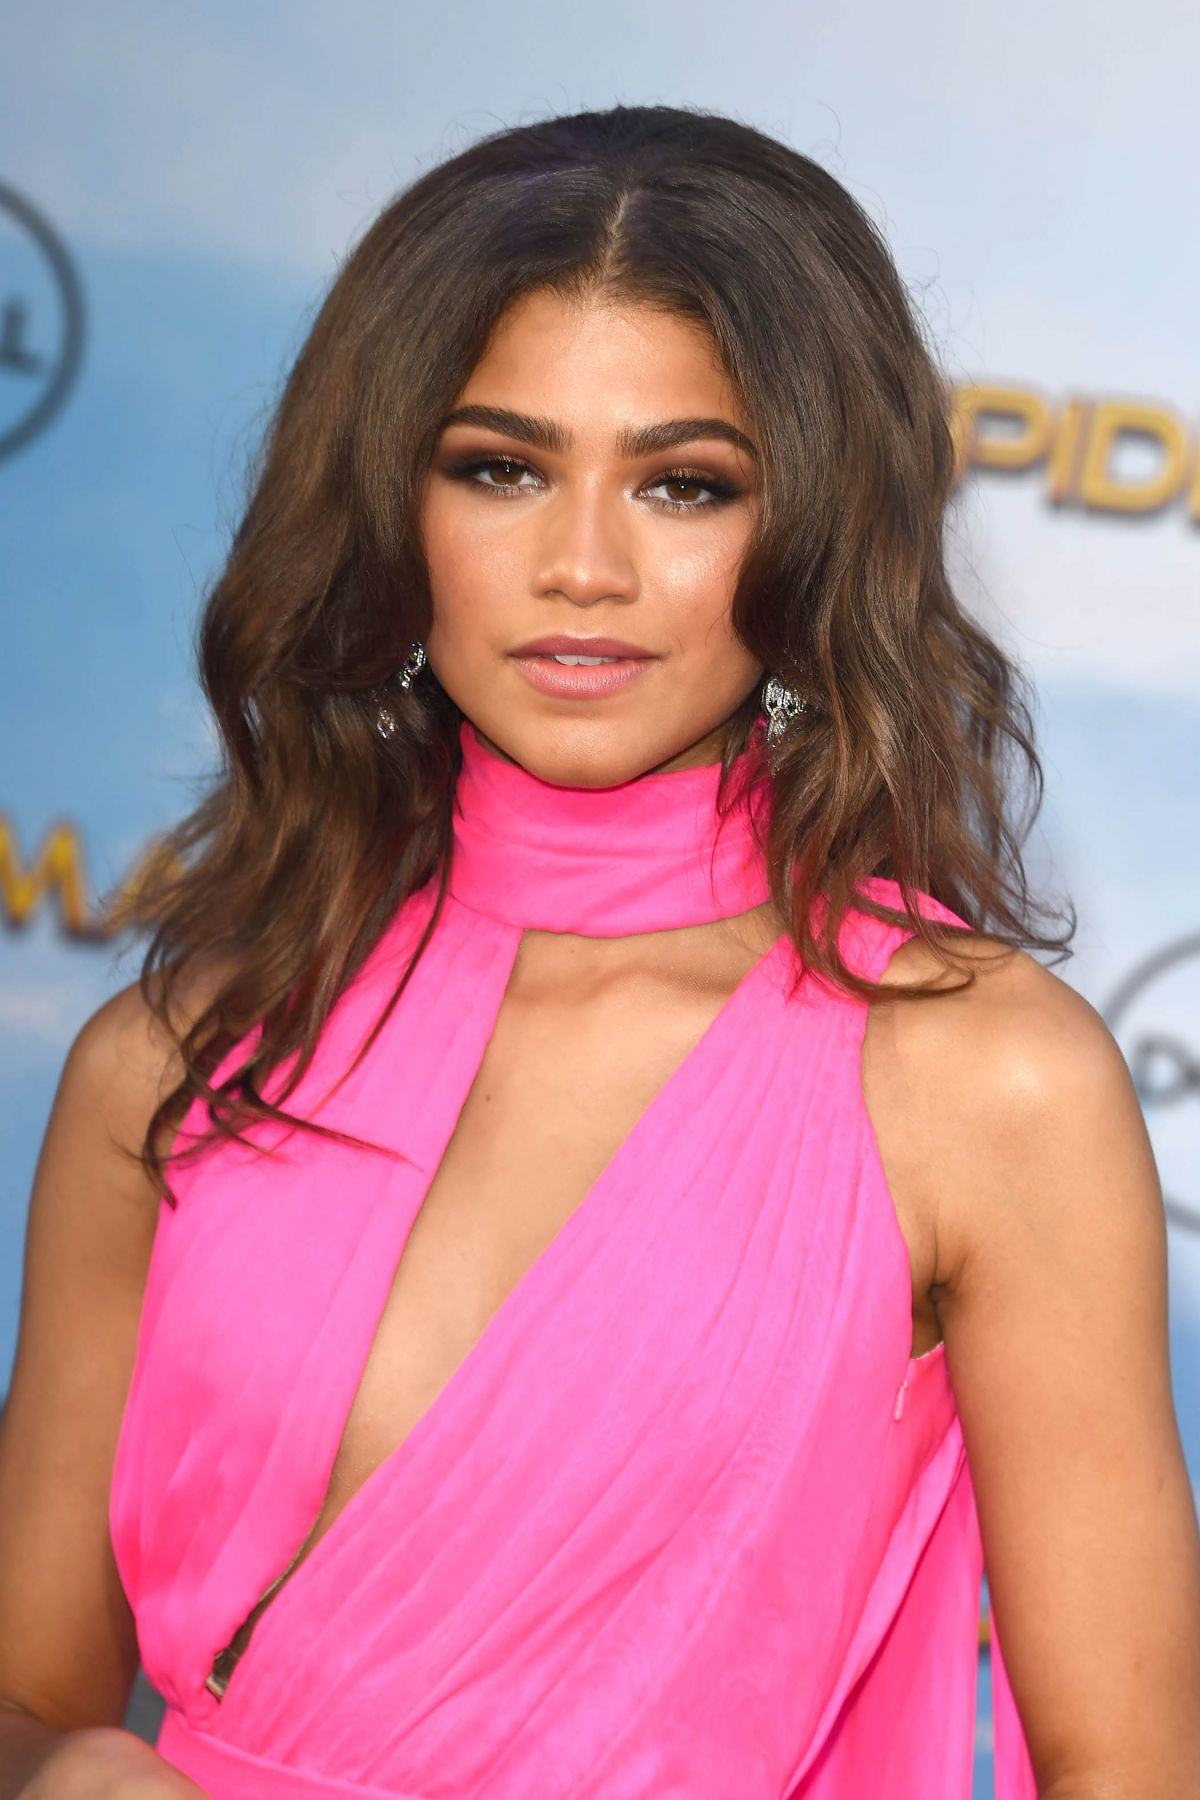 Zendaya Coleman At Spiderman Homecoming Premiere In Los